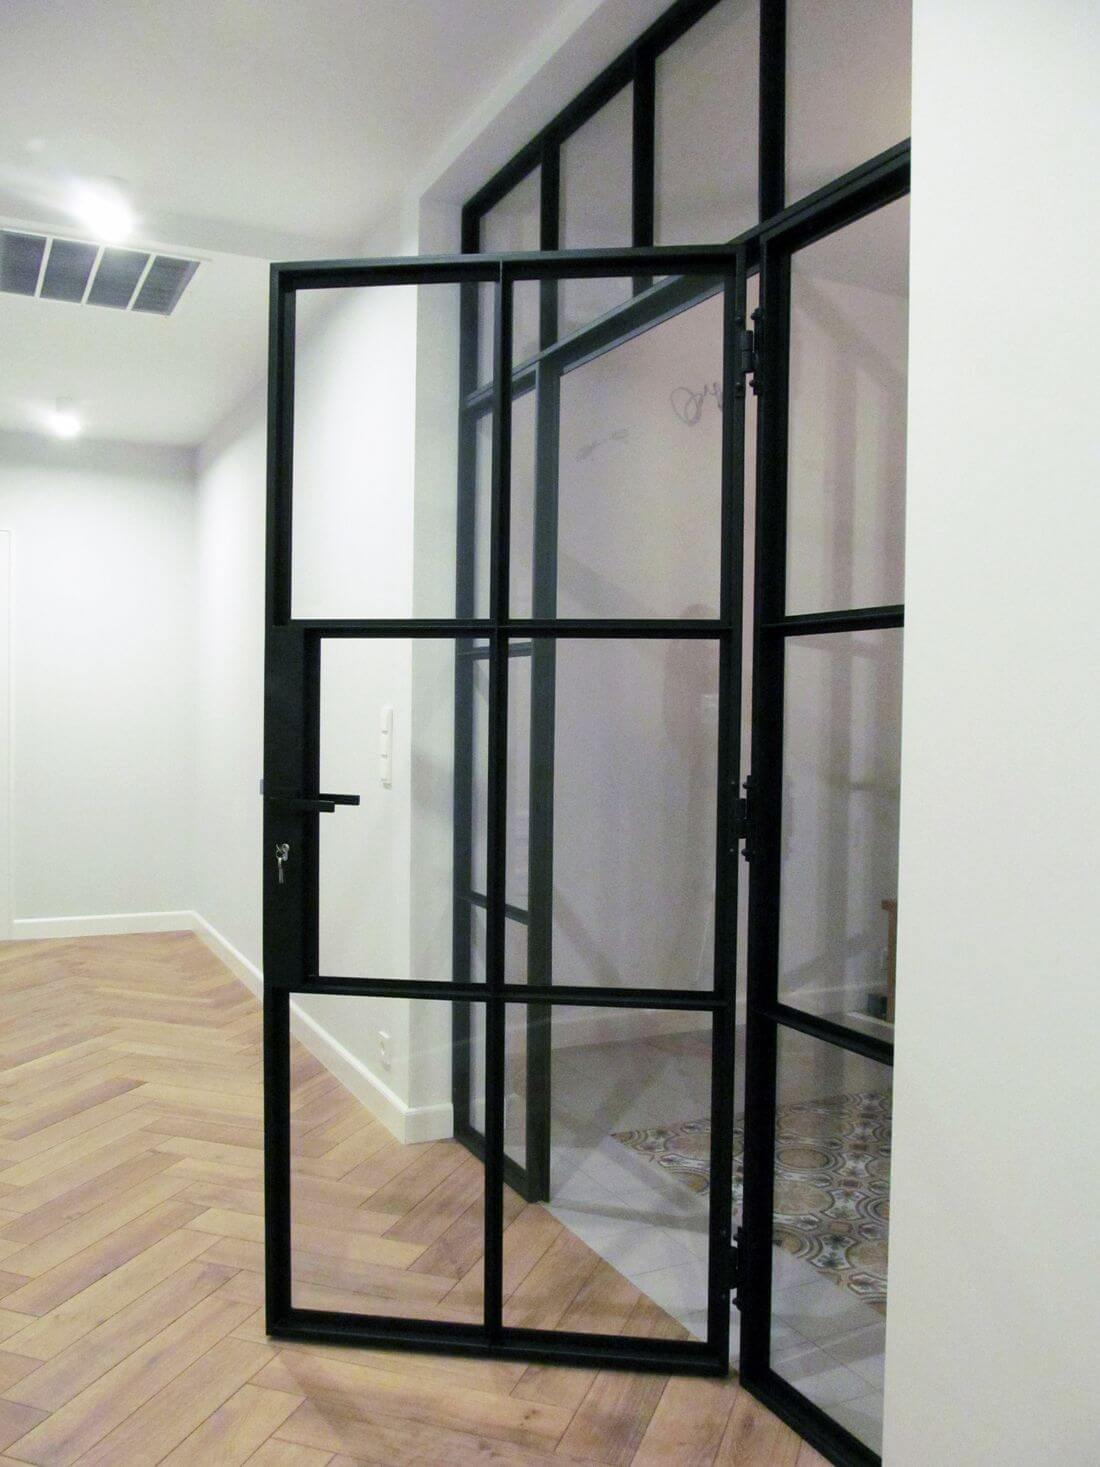 Loft glazed partition with swinging loft doors lit by artificial light from the corridor